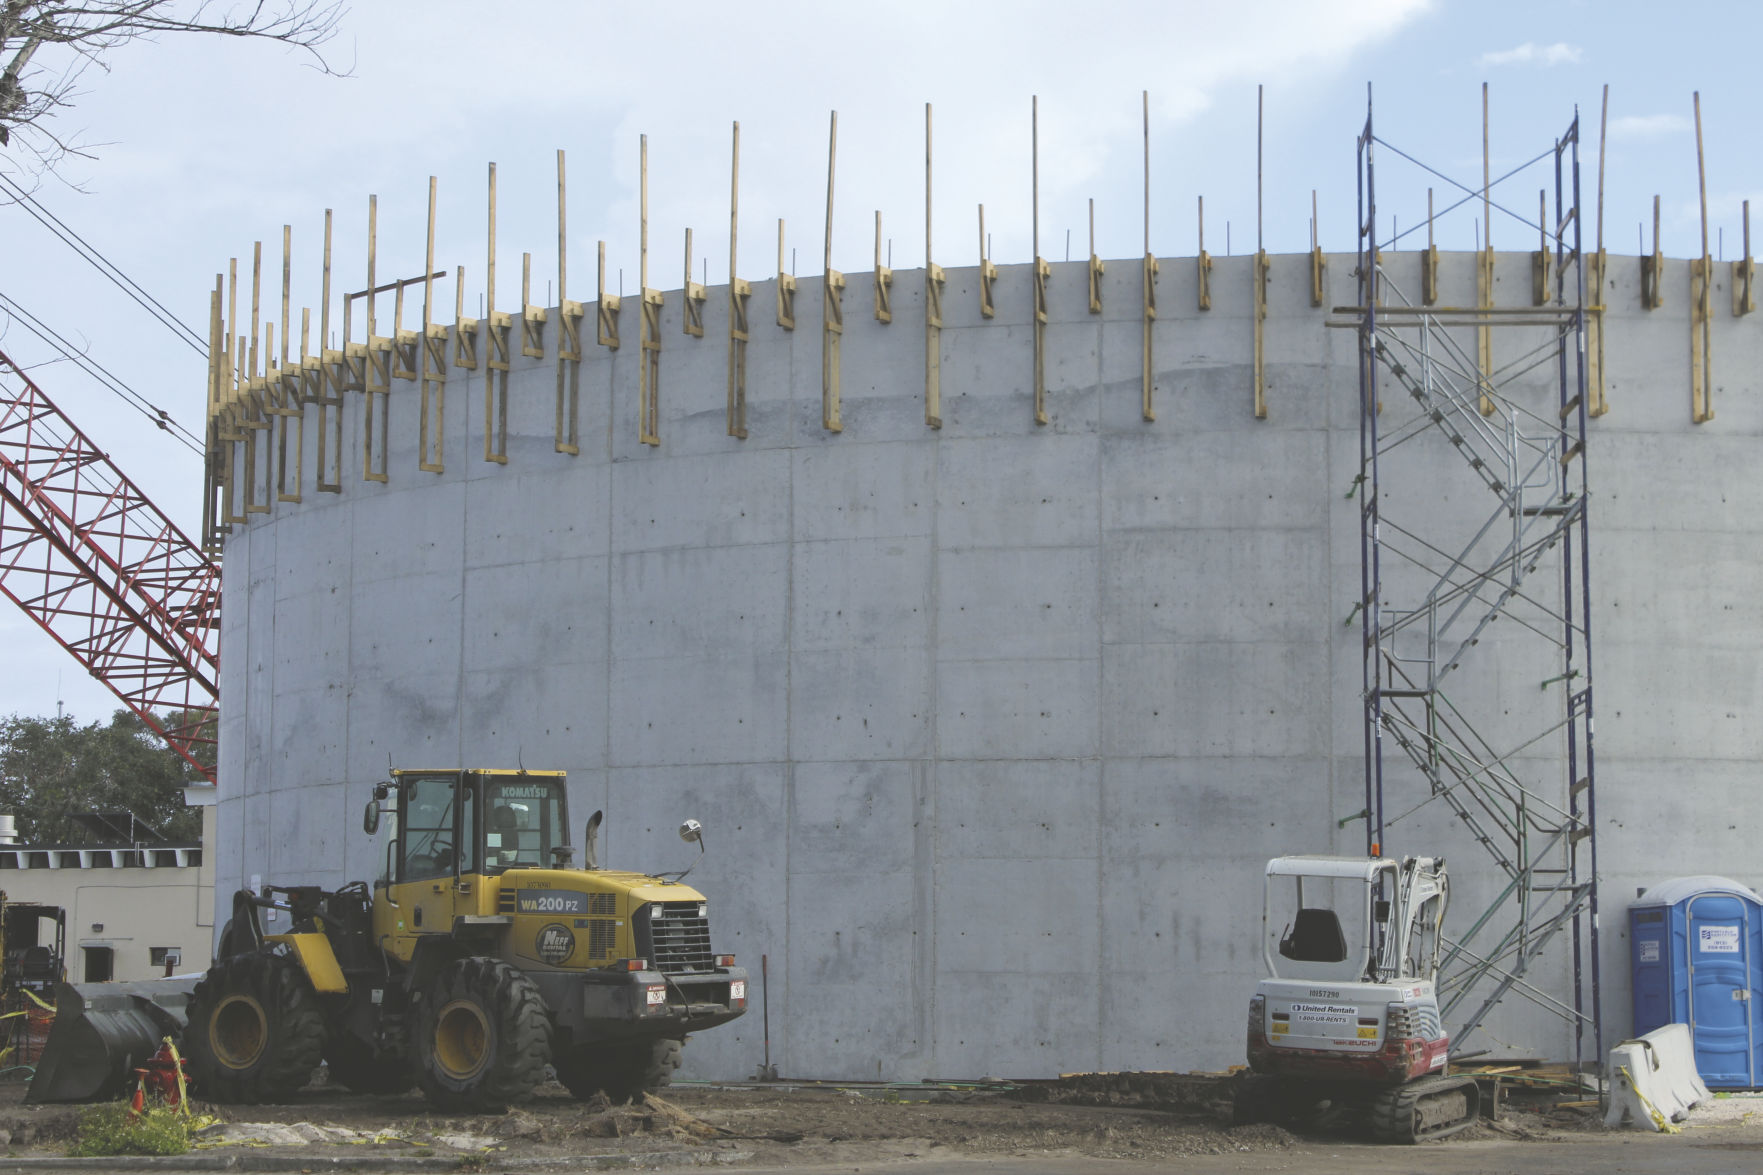 The Saint Petersburg Water Treatment Plant Is Currently Under Construction  For More Storage Tanks.